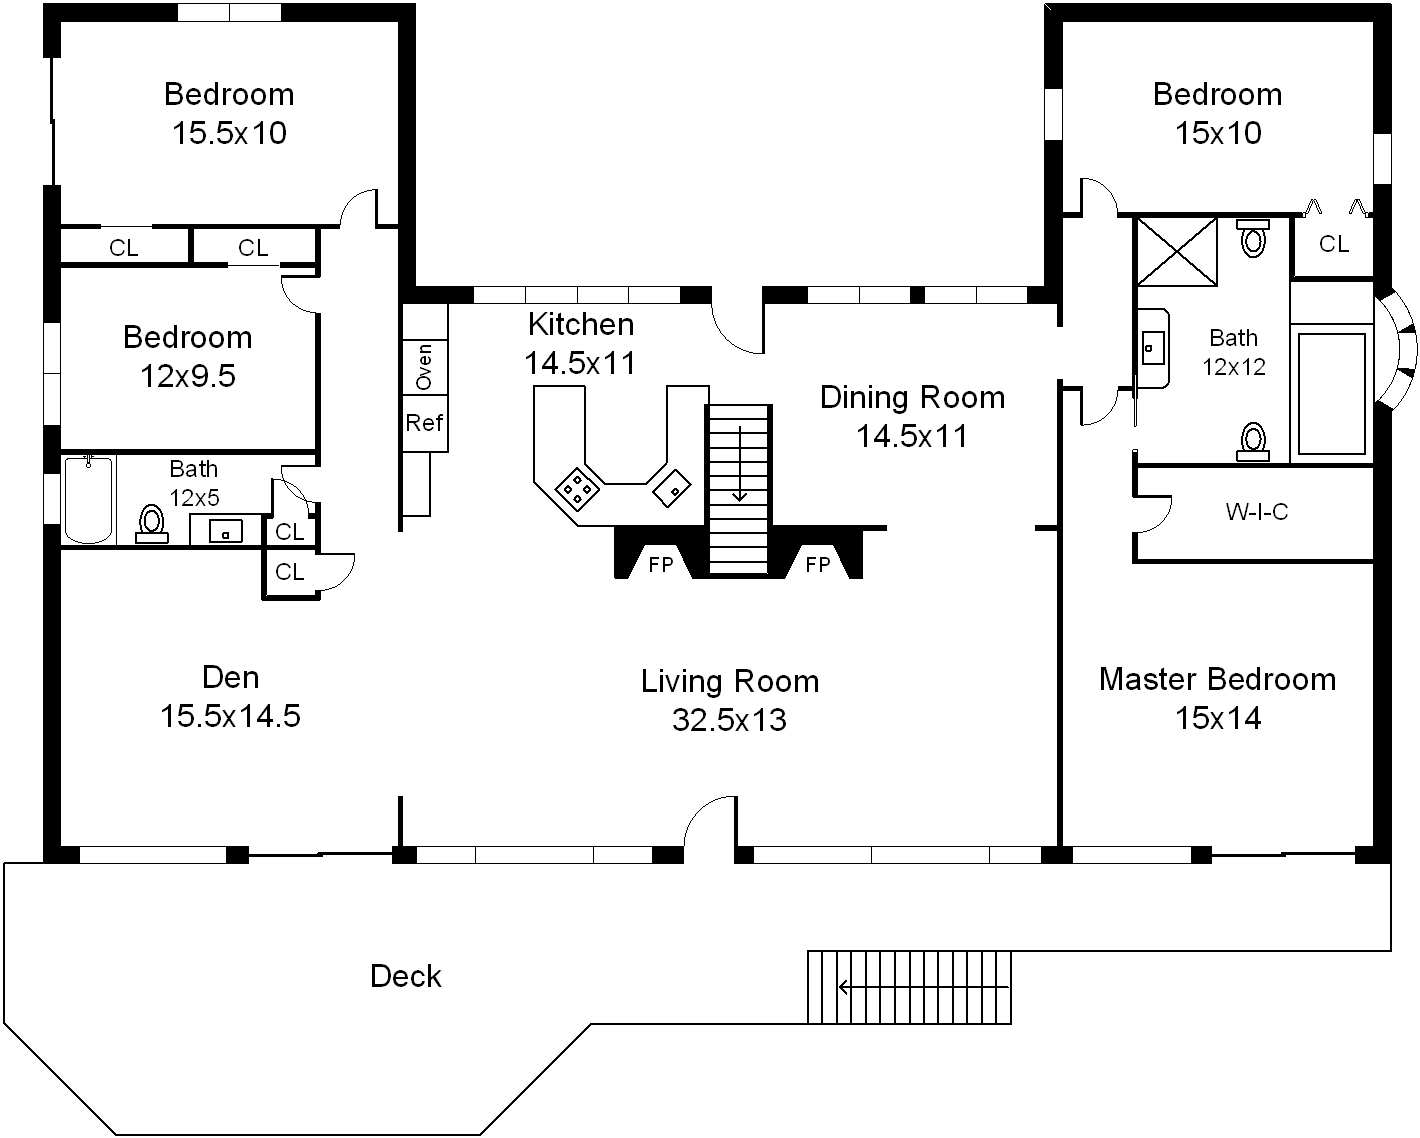 floor plans of centerport western waterview